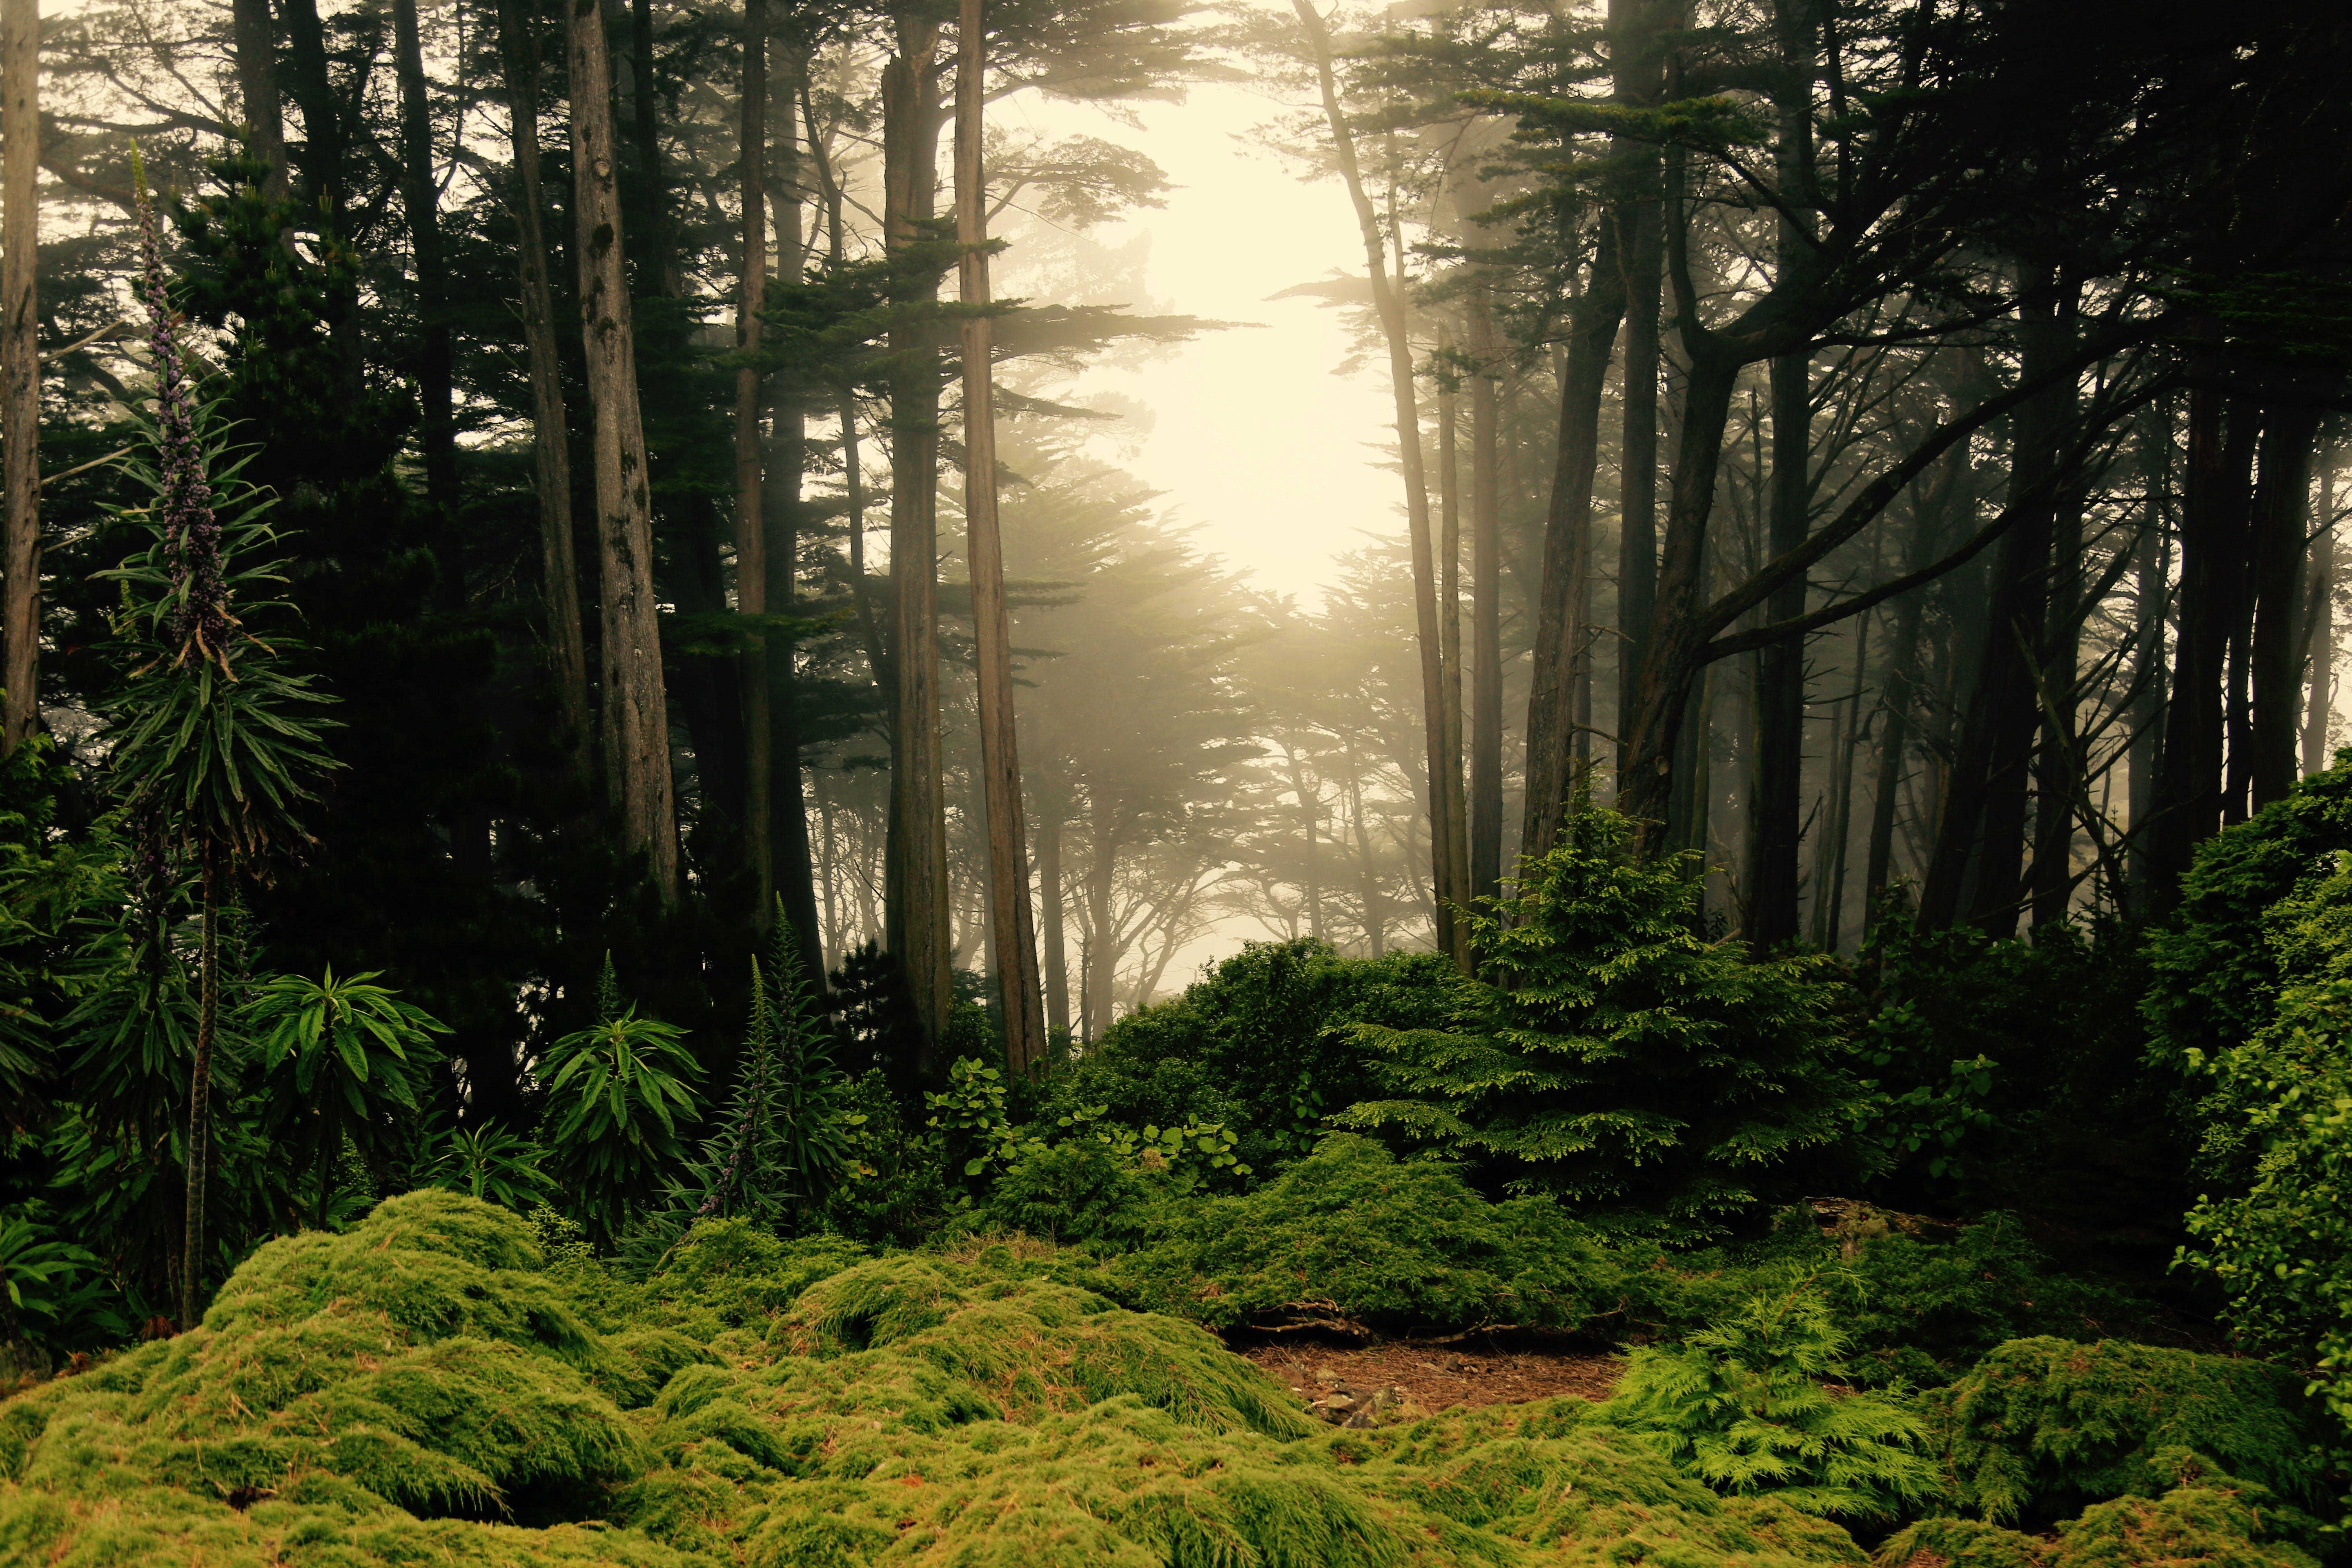 magical forest scene in new zealand image free stock photo